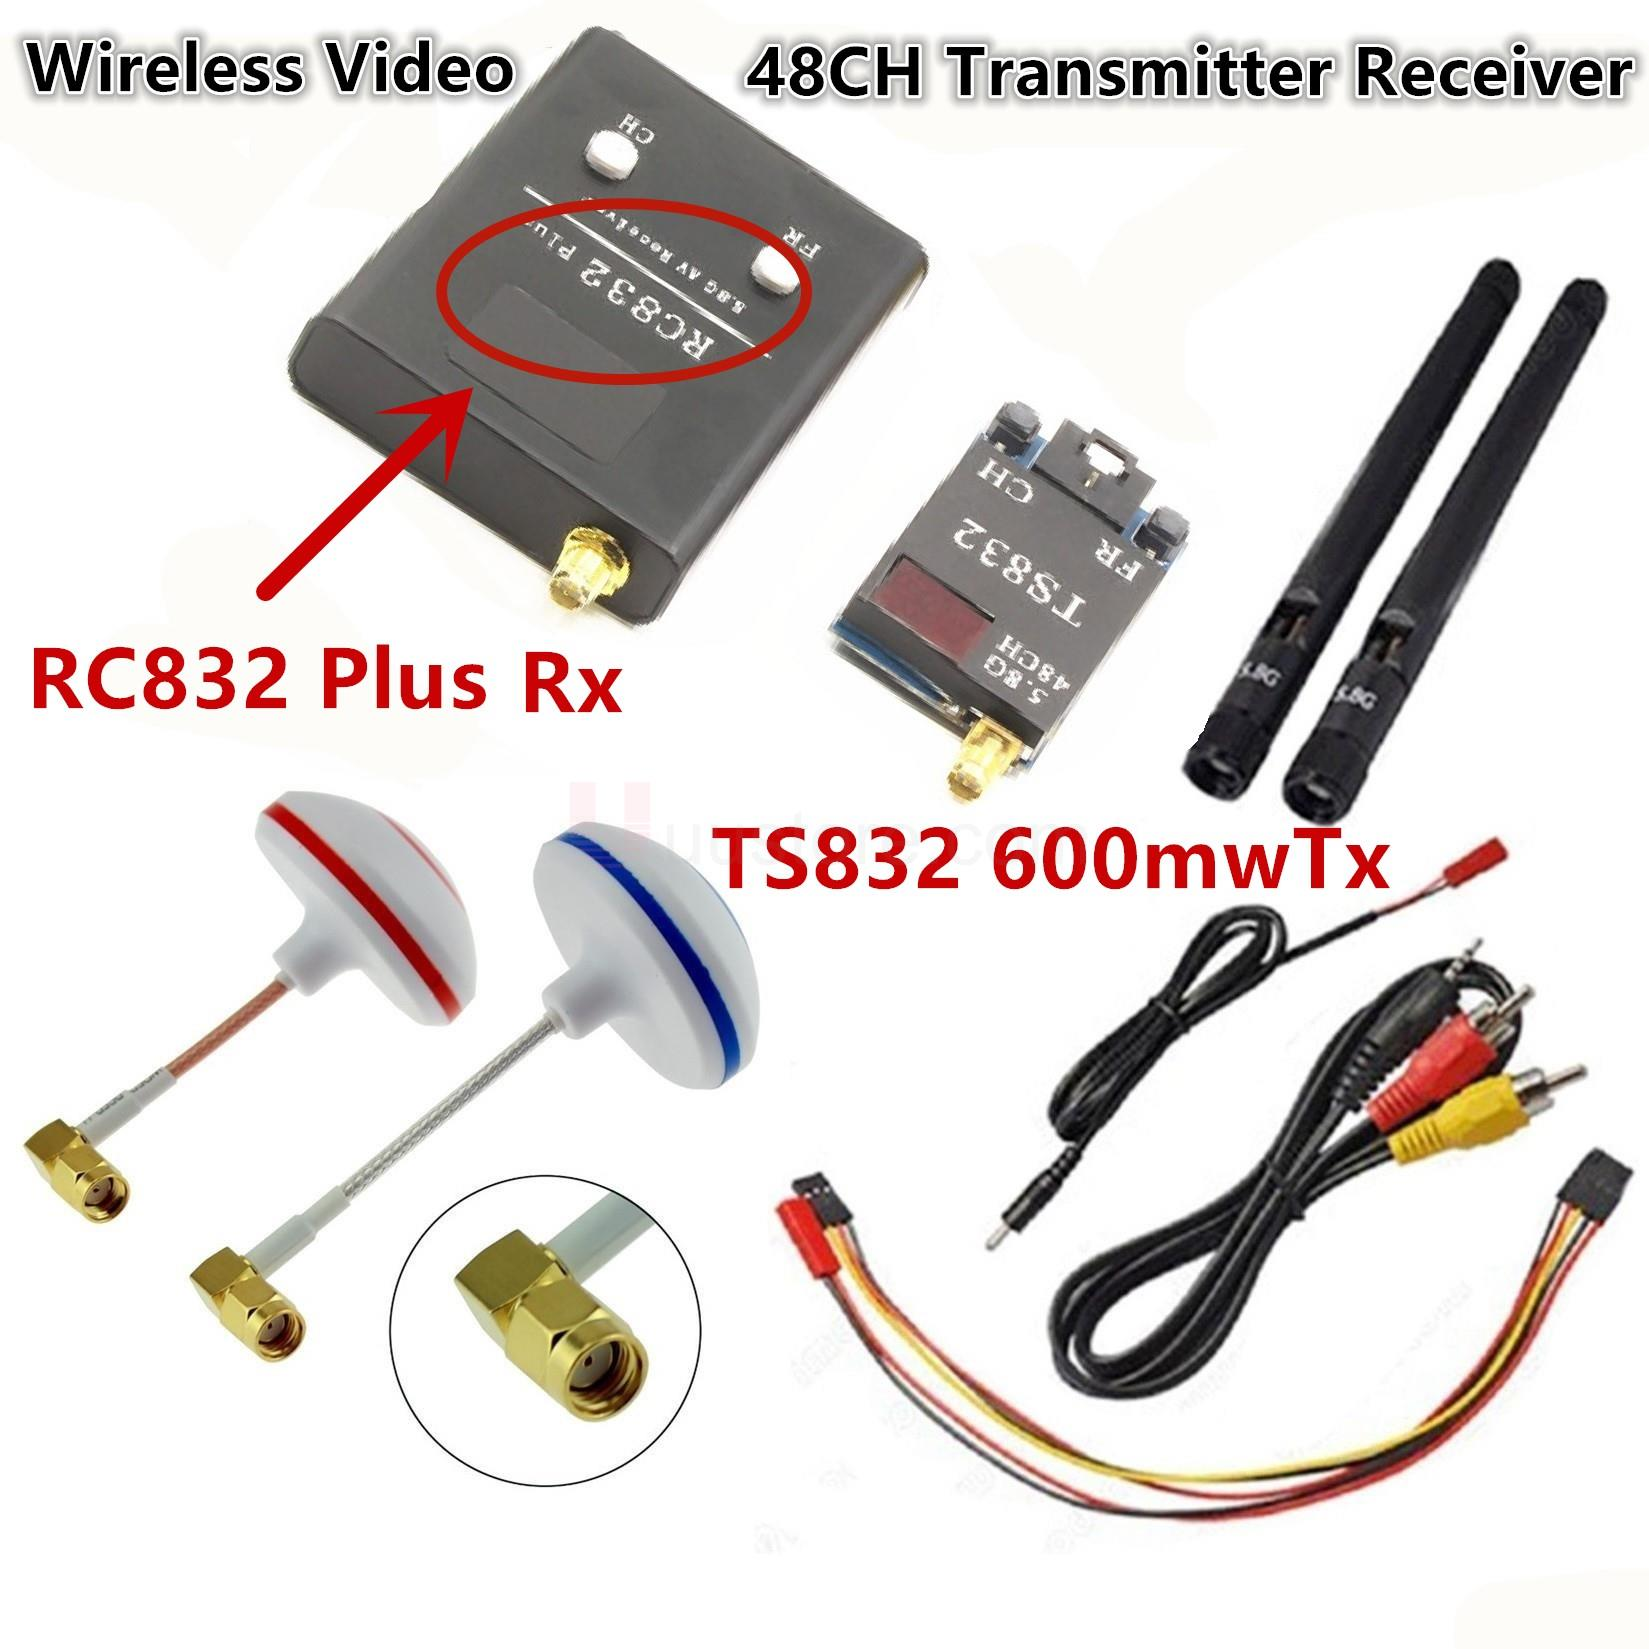 FPV 5.8G 5.8GHz 600mW Wireless AV Audio Video 48CH RC Transmitter TX TS832 & Receiver RX RC832 Plus For Racing drone F450 QAV250 ts832 48ch 5 8g 600mw 5km wireless audio video transmitter for fpv rc